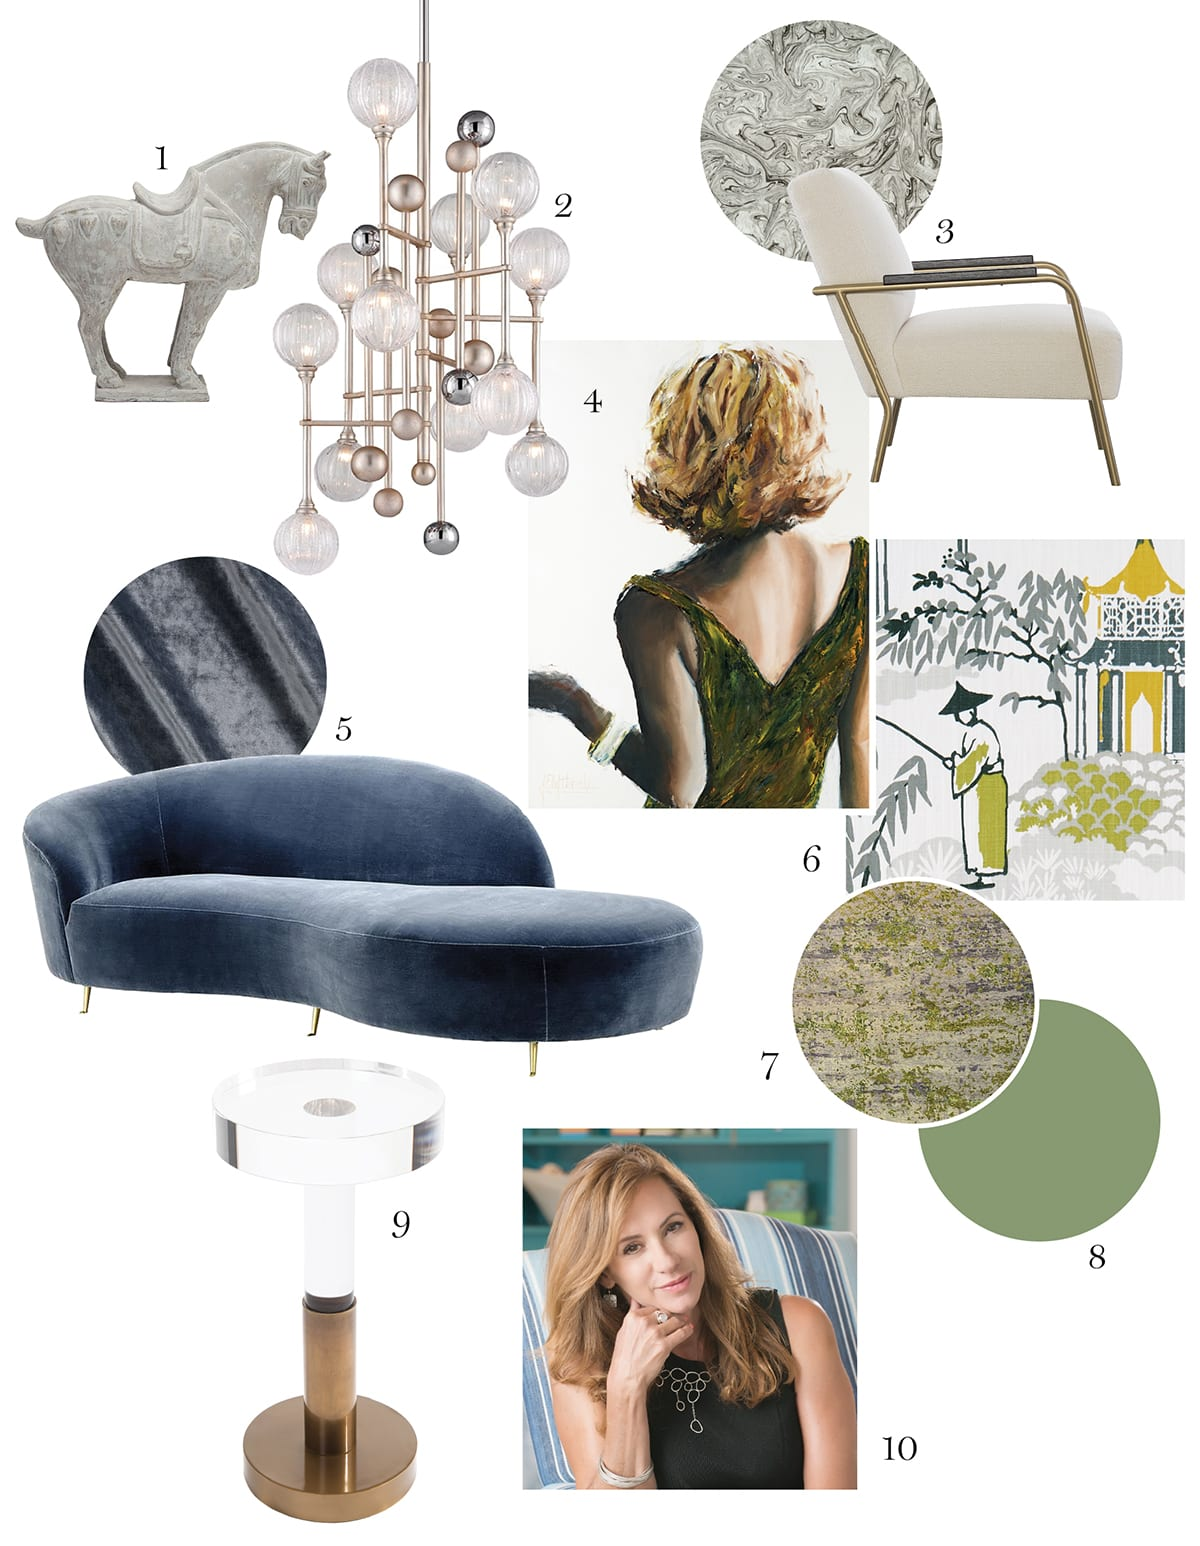 1. Rufus horse sculpture, Made Goods 2. ­Majorette chandelier, Corbett Lighting 3. Levi chair, CR Lainens 4. All That Glitters #3, oil on paper by Janel Eleftherakis 5. Khan sofa from Eichholtz 6. Drapery fabric: Clarke & Clarke Pagoda in Chartreuse and Charcoal 7. Jive patinated rug, Tissage 8. Paint for walls and built-in bookshelves: Yeabridge Green in high gloss 9. Ike side table from CuratedKravet 10. Designer Diana James